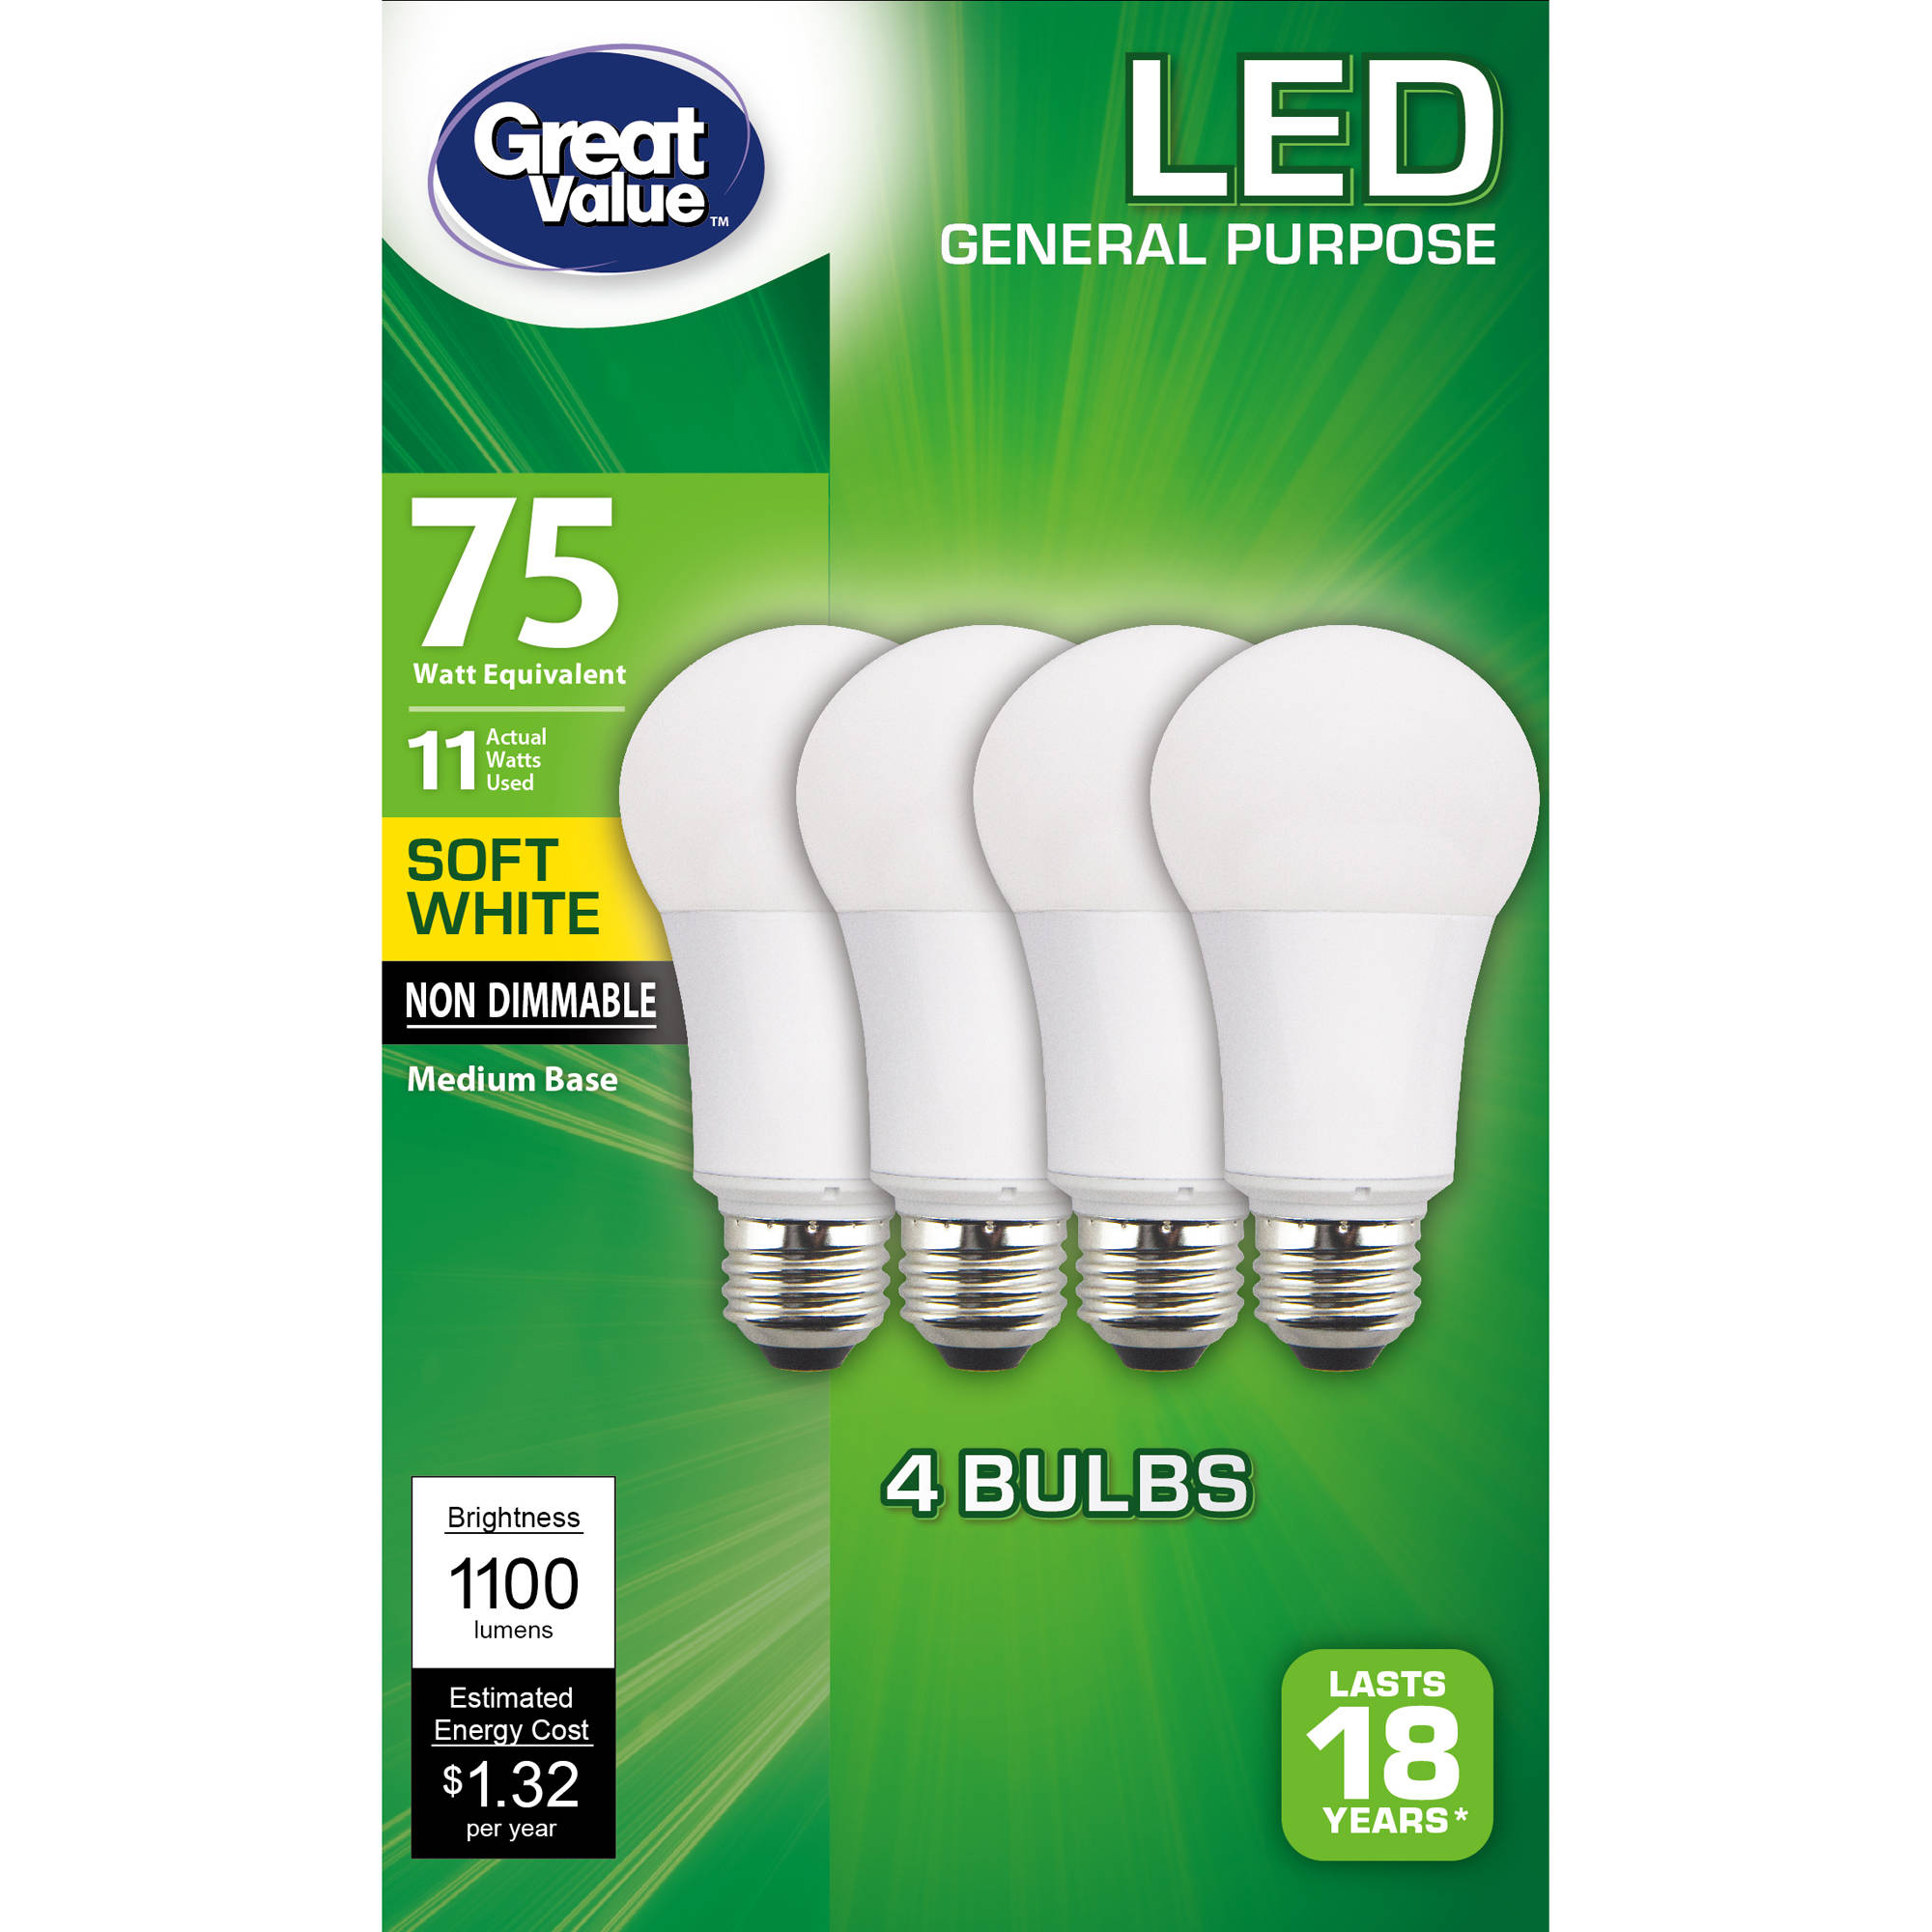 Great Value LED A19 (E26) Light Bulbs, 11W (75W Equivalent), Soft White, 4-Pack